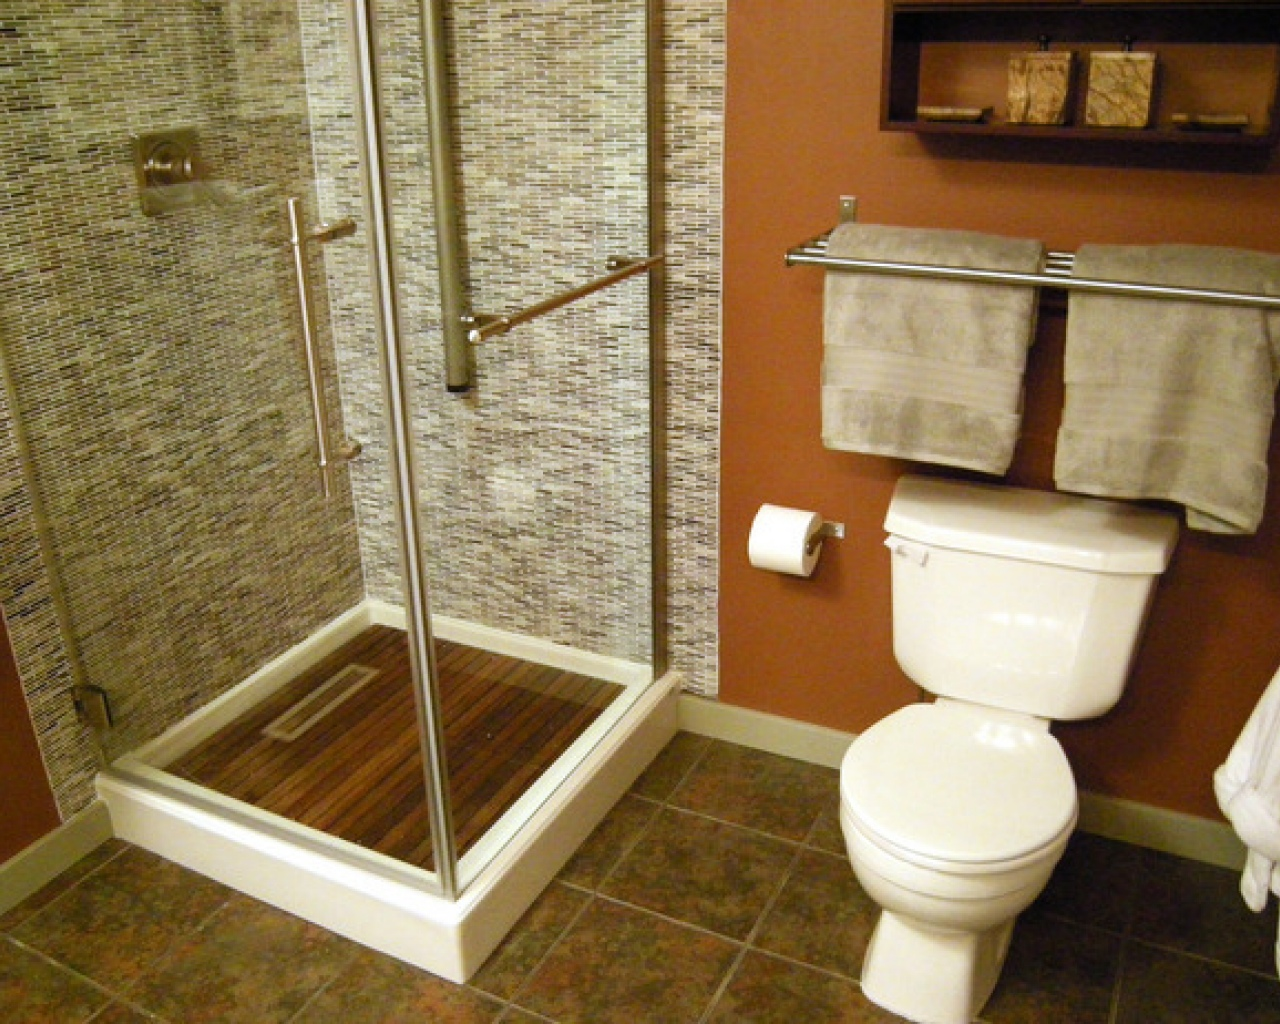 Stupidly Simple Home Improvement Tips Part 3